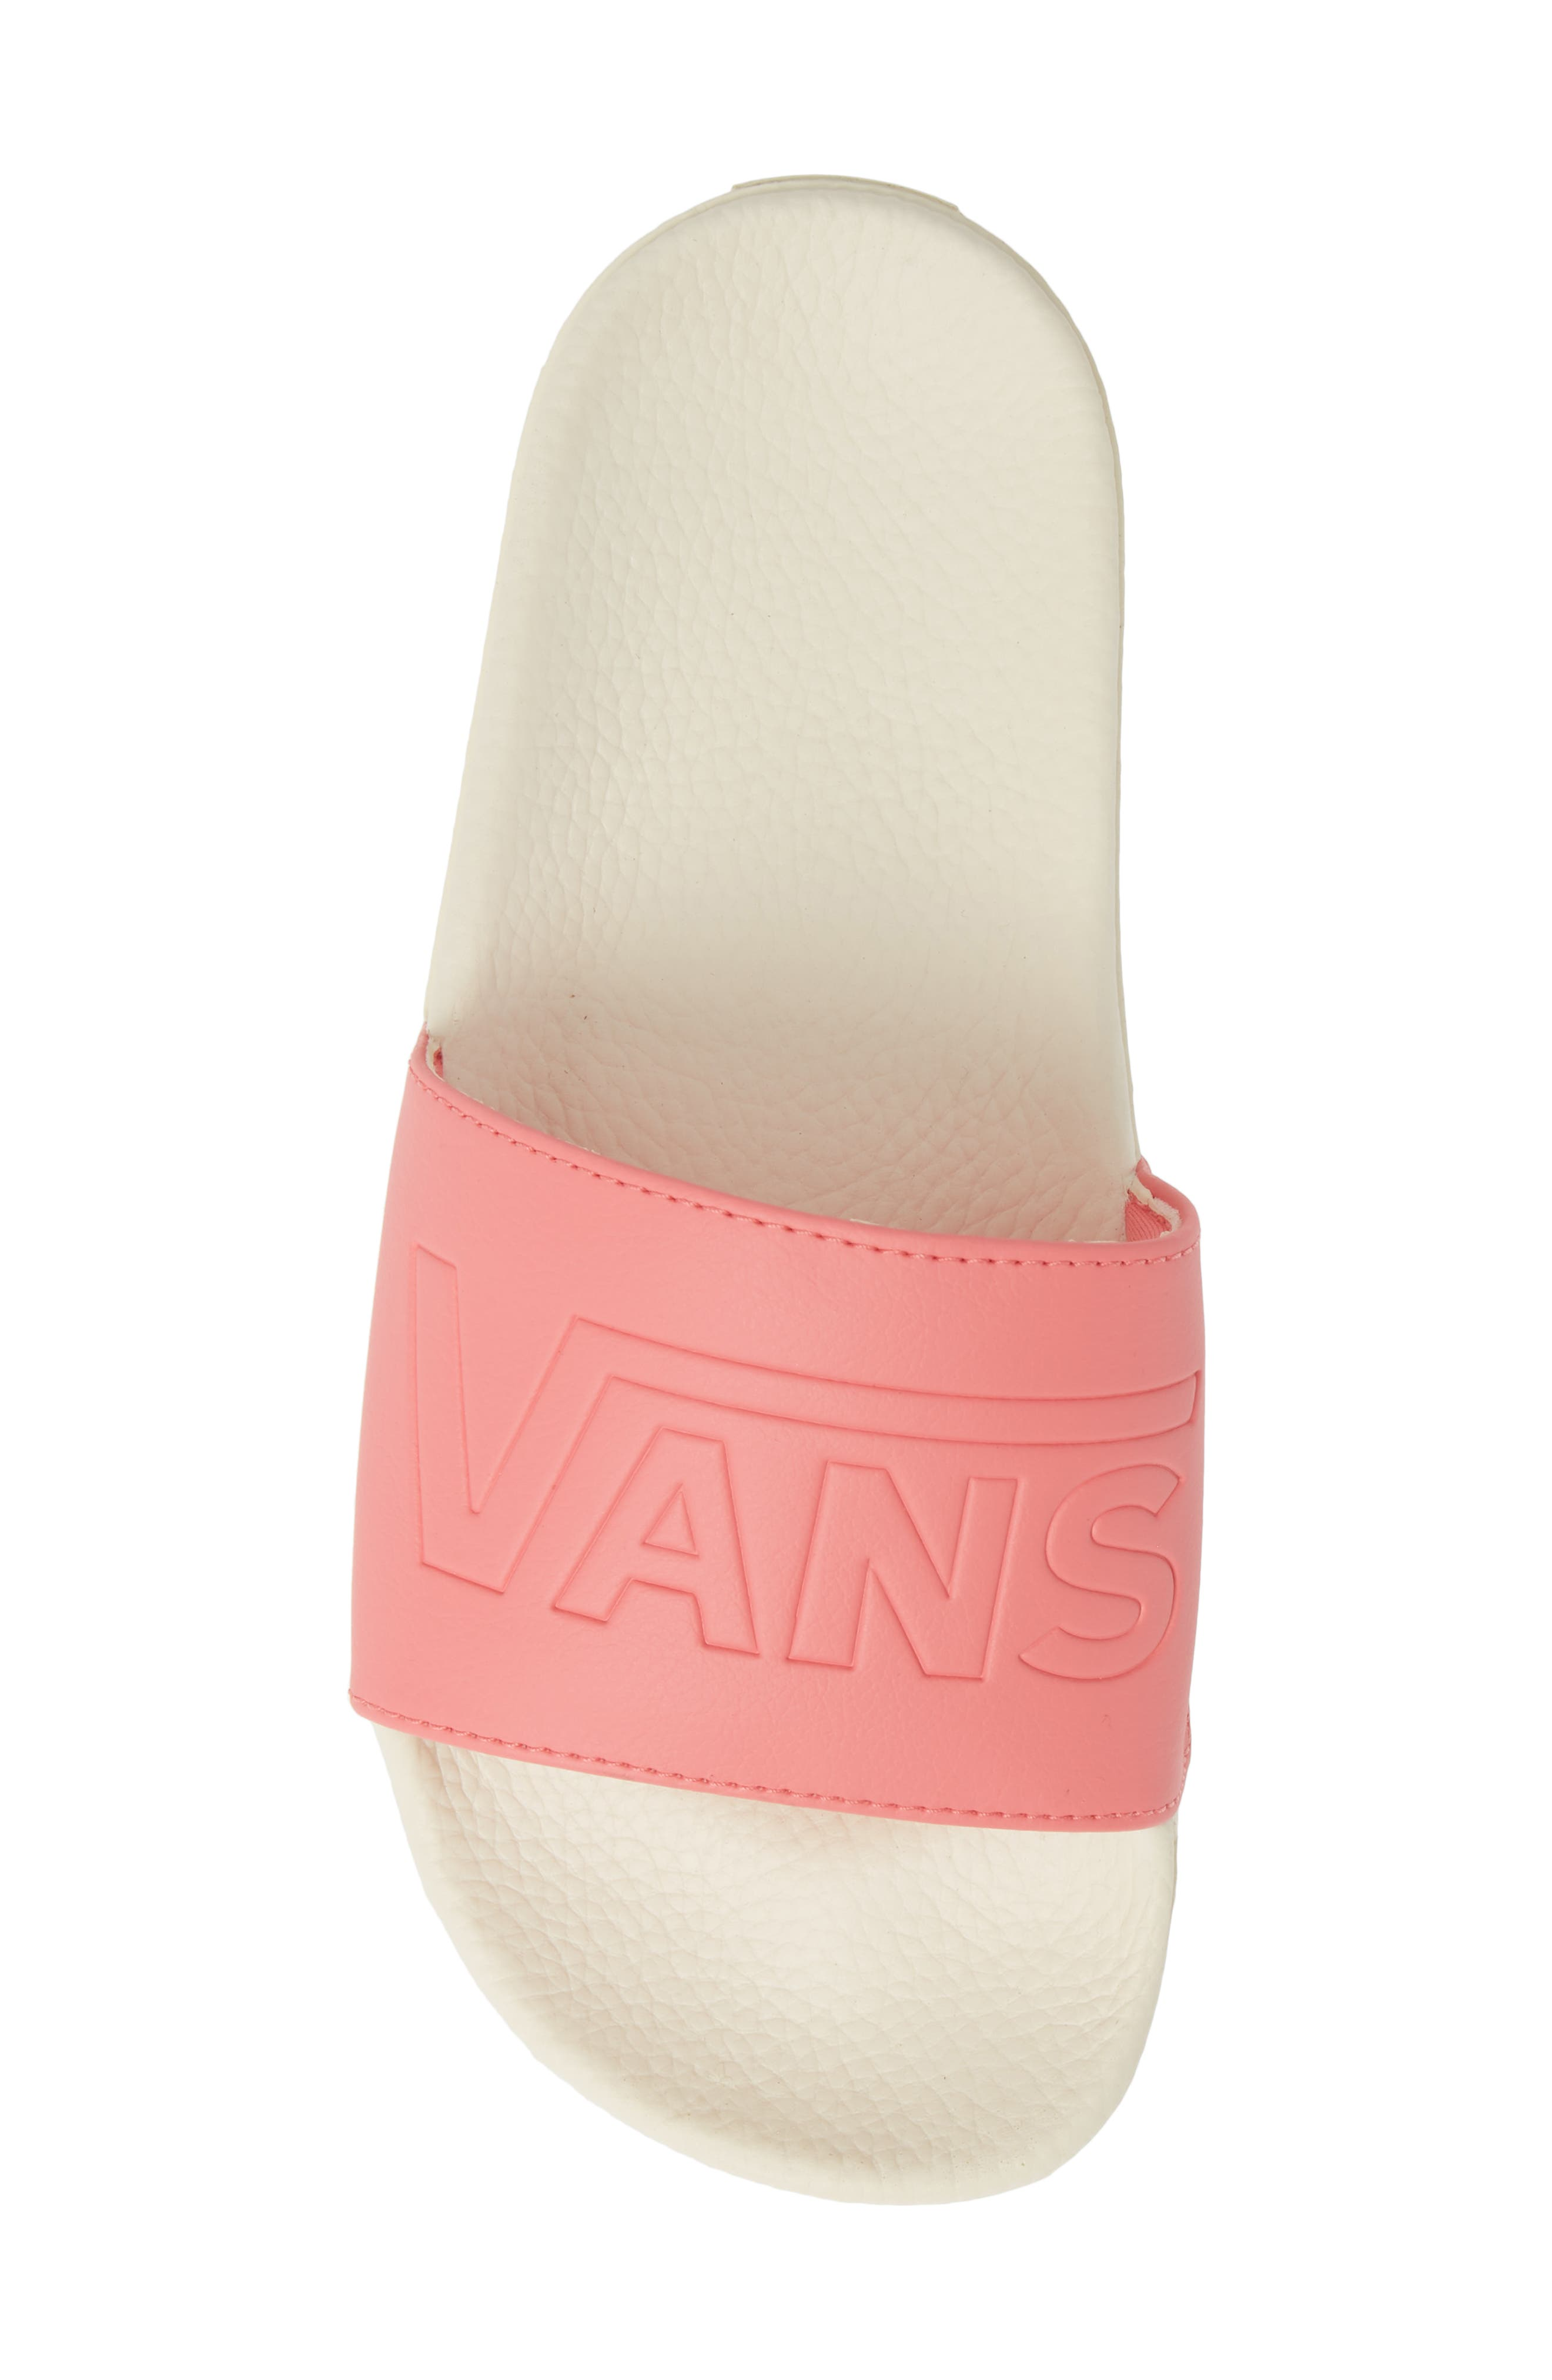 VANS, Slide-On Sandal, Alternate thumbnail 5, color, STRAWBERRY PINK